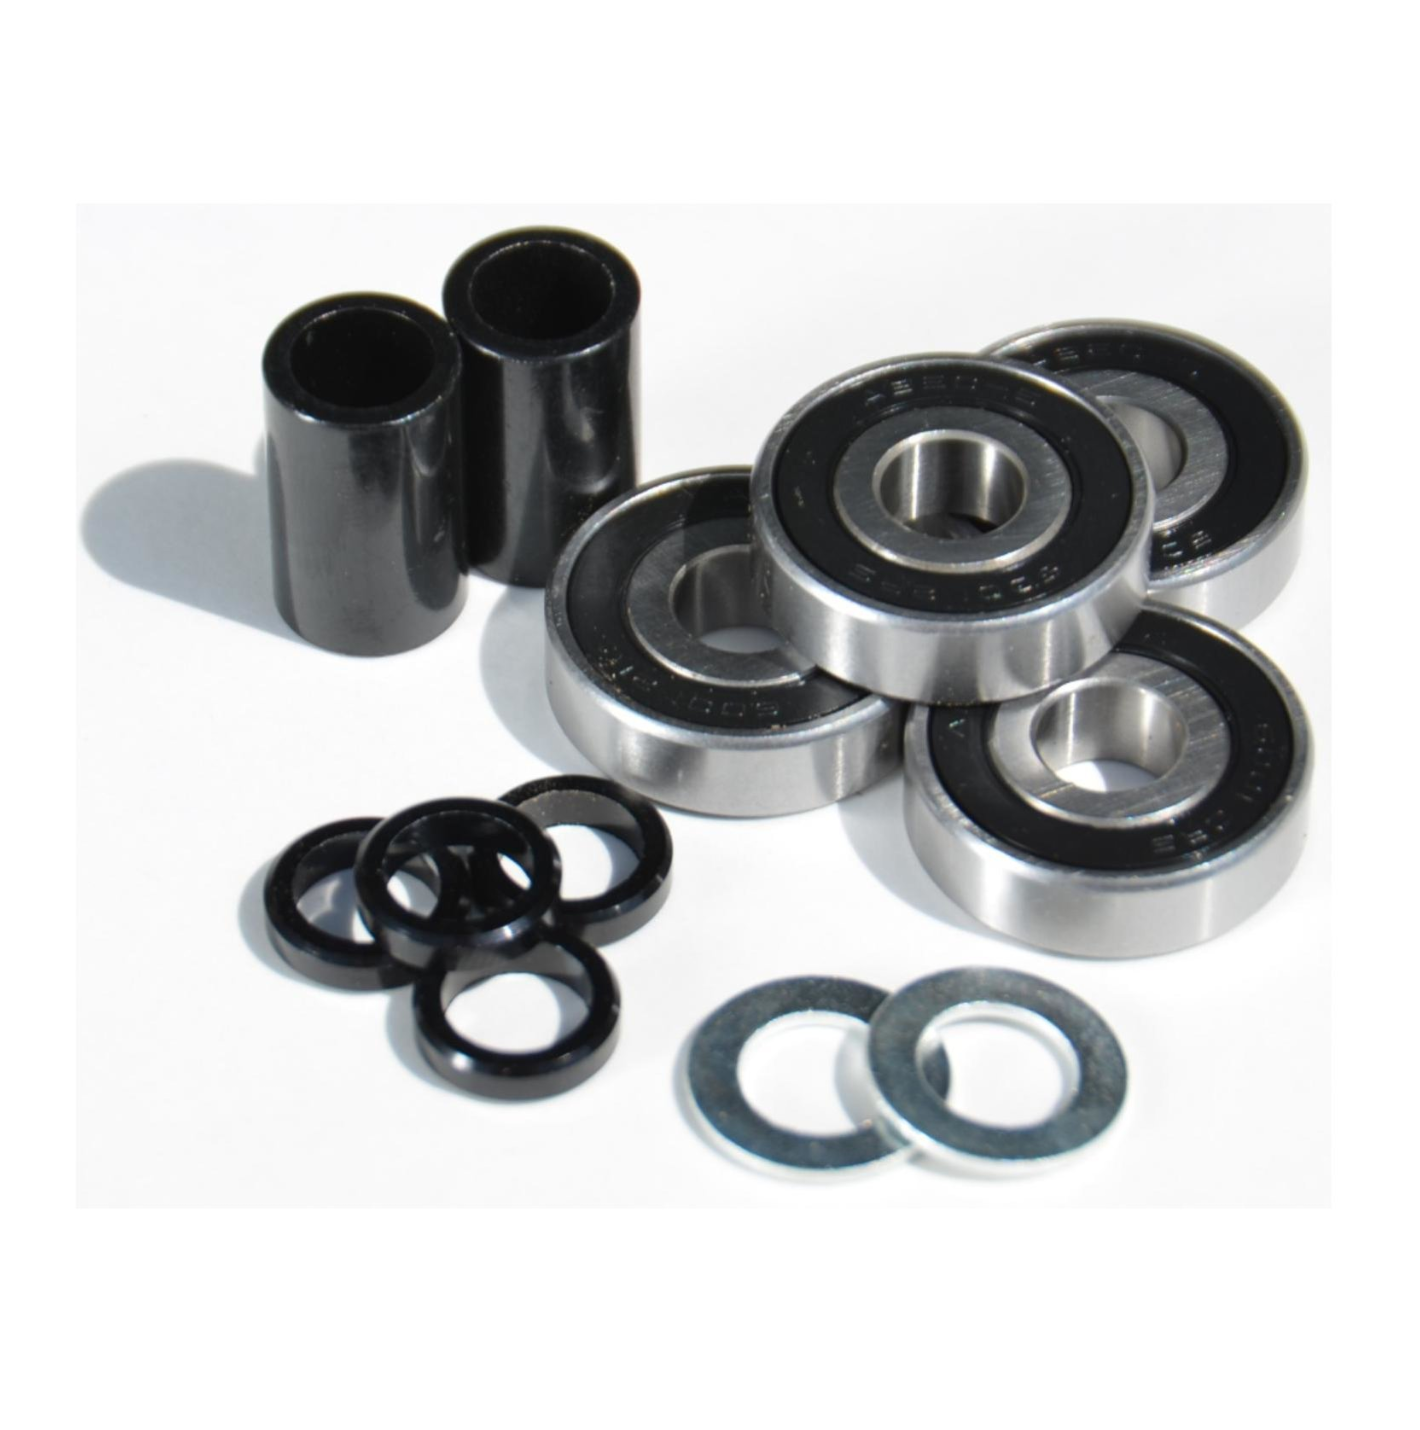 Image of 10mm X 28mm - MBS Scooter Bearings / Phase Two Retrofit (Set of 4)